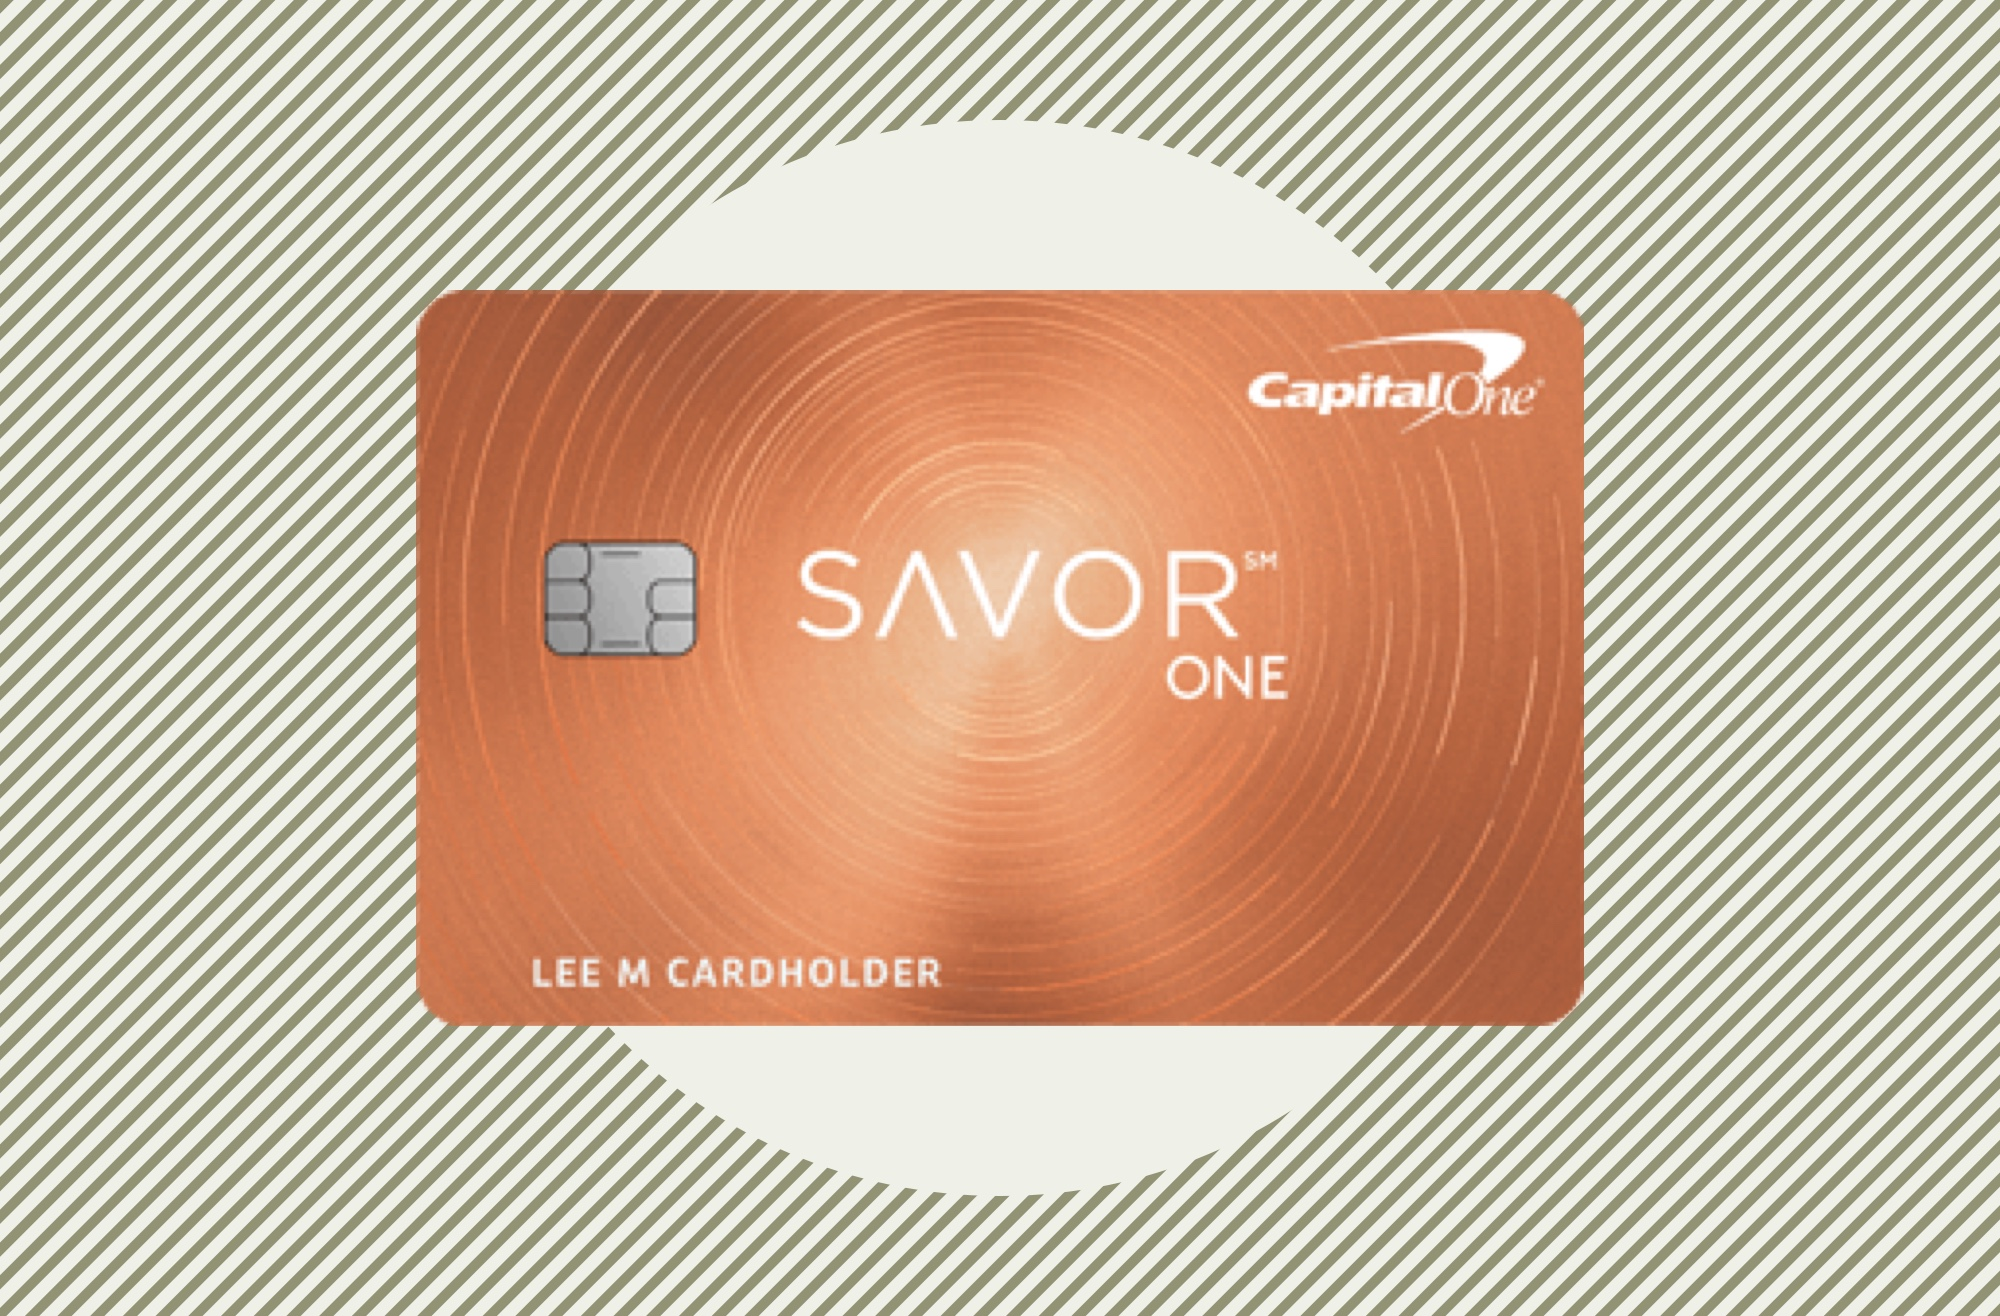 Credit card review.